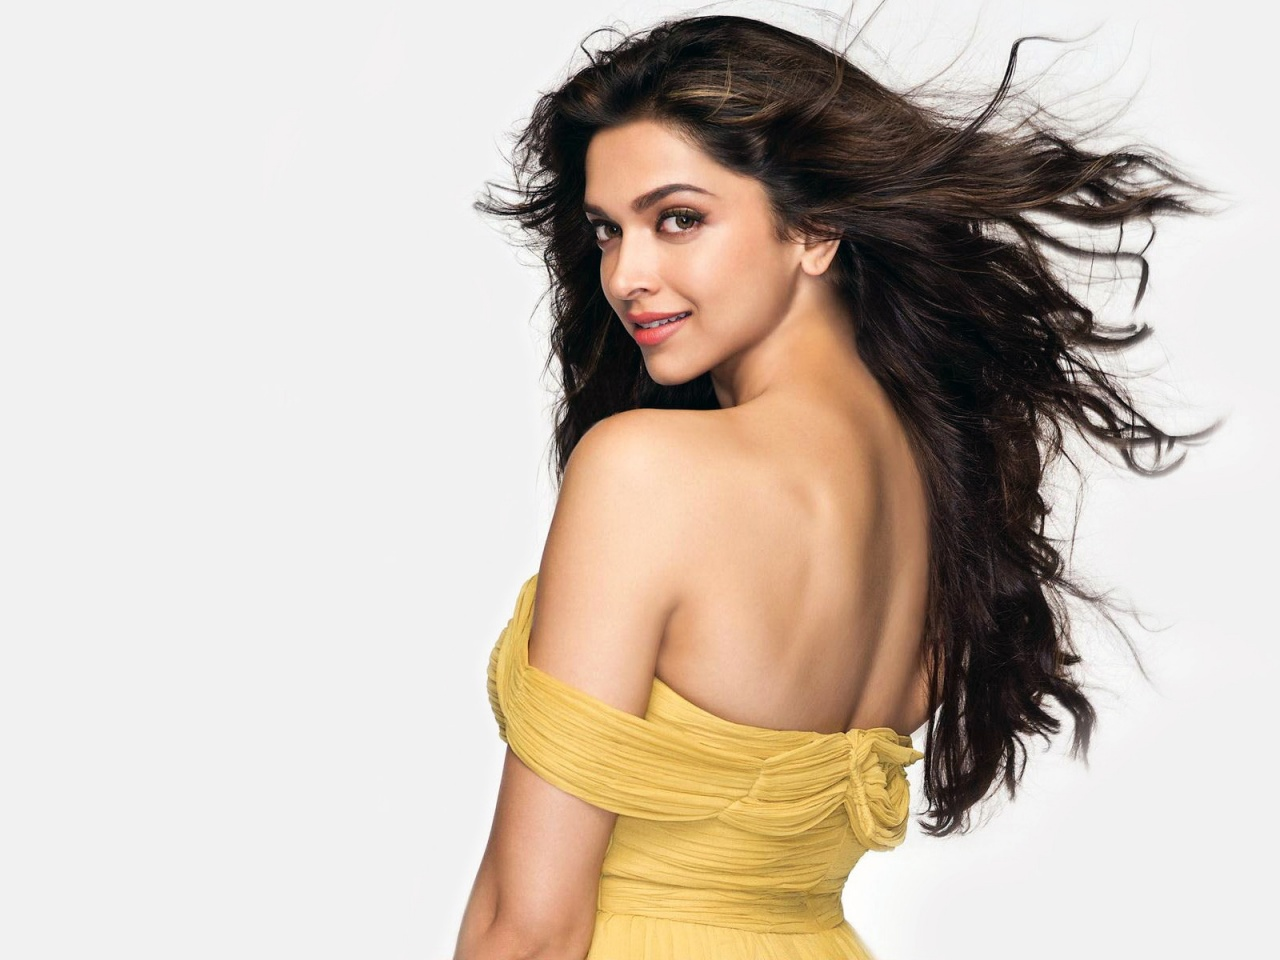 http://3.bp.blogspot.com/-lp0UuCFKaBg/USo6z6jP27I/AAAAAAAAAJY/ZR0EwGsosuw/s1600/Bollywood+Actress+Deepika+Padukone+Hot+Wallpapers.jpg